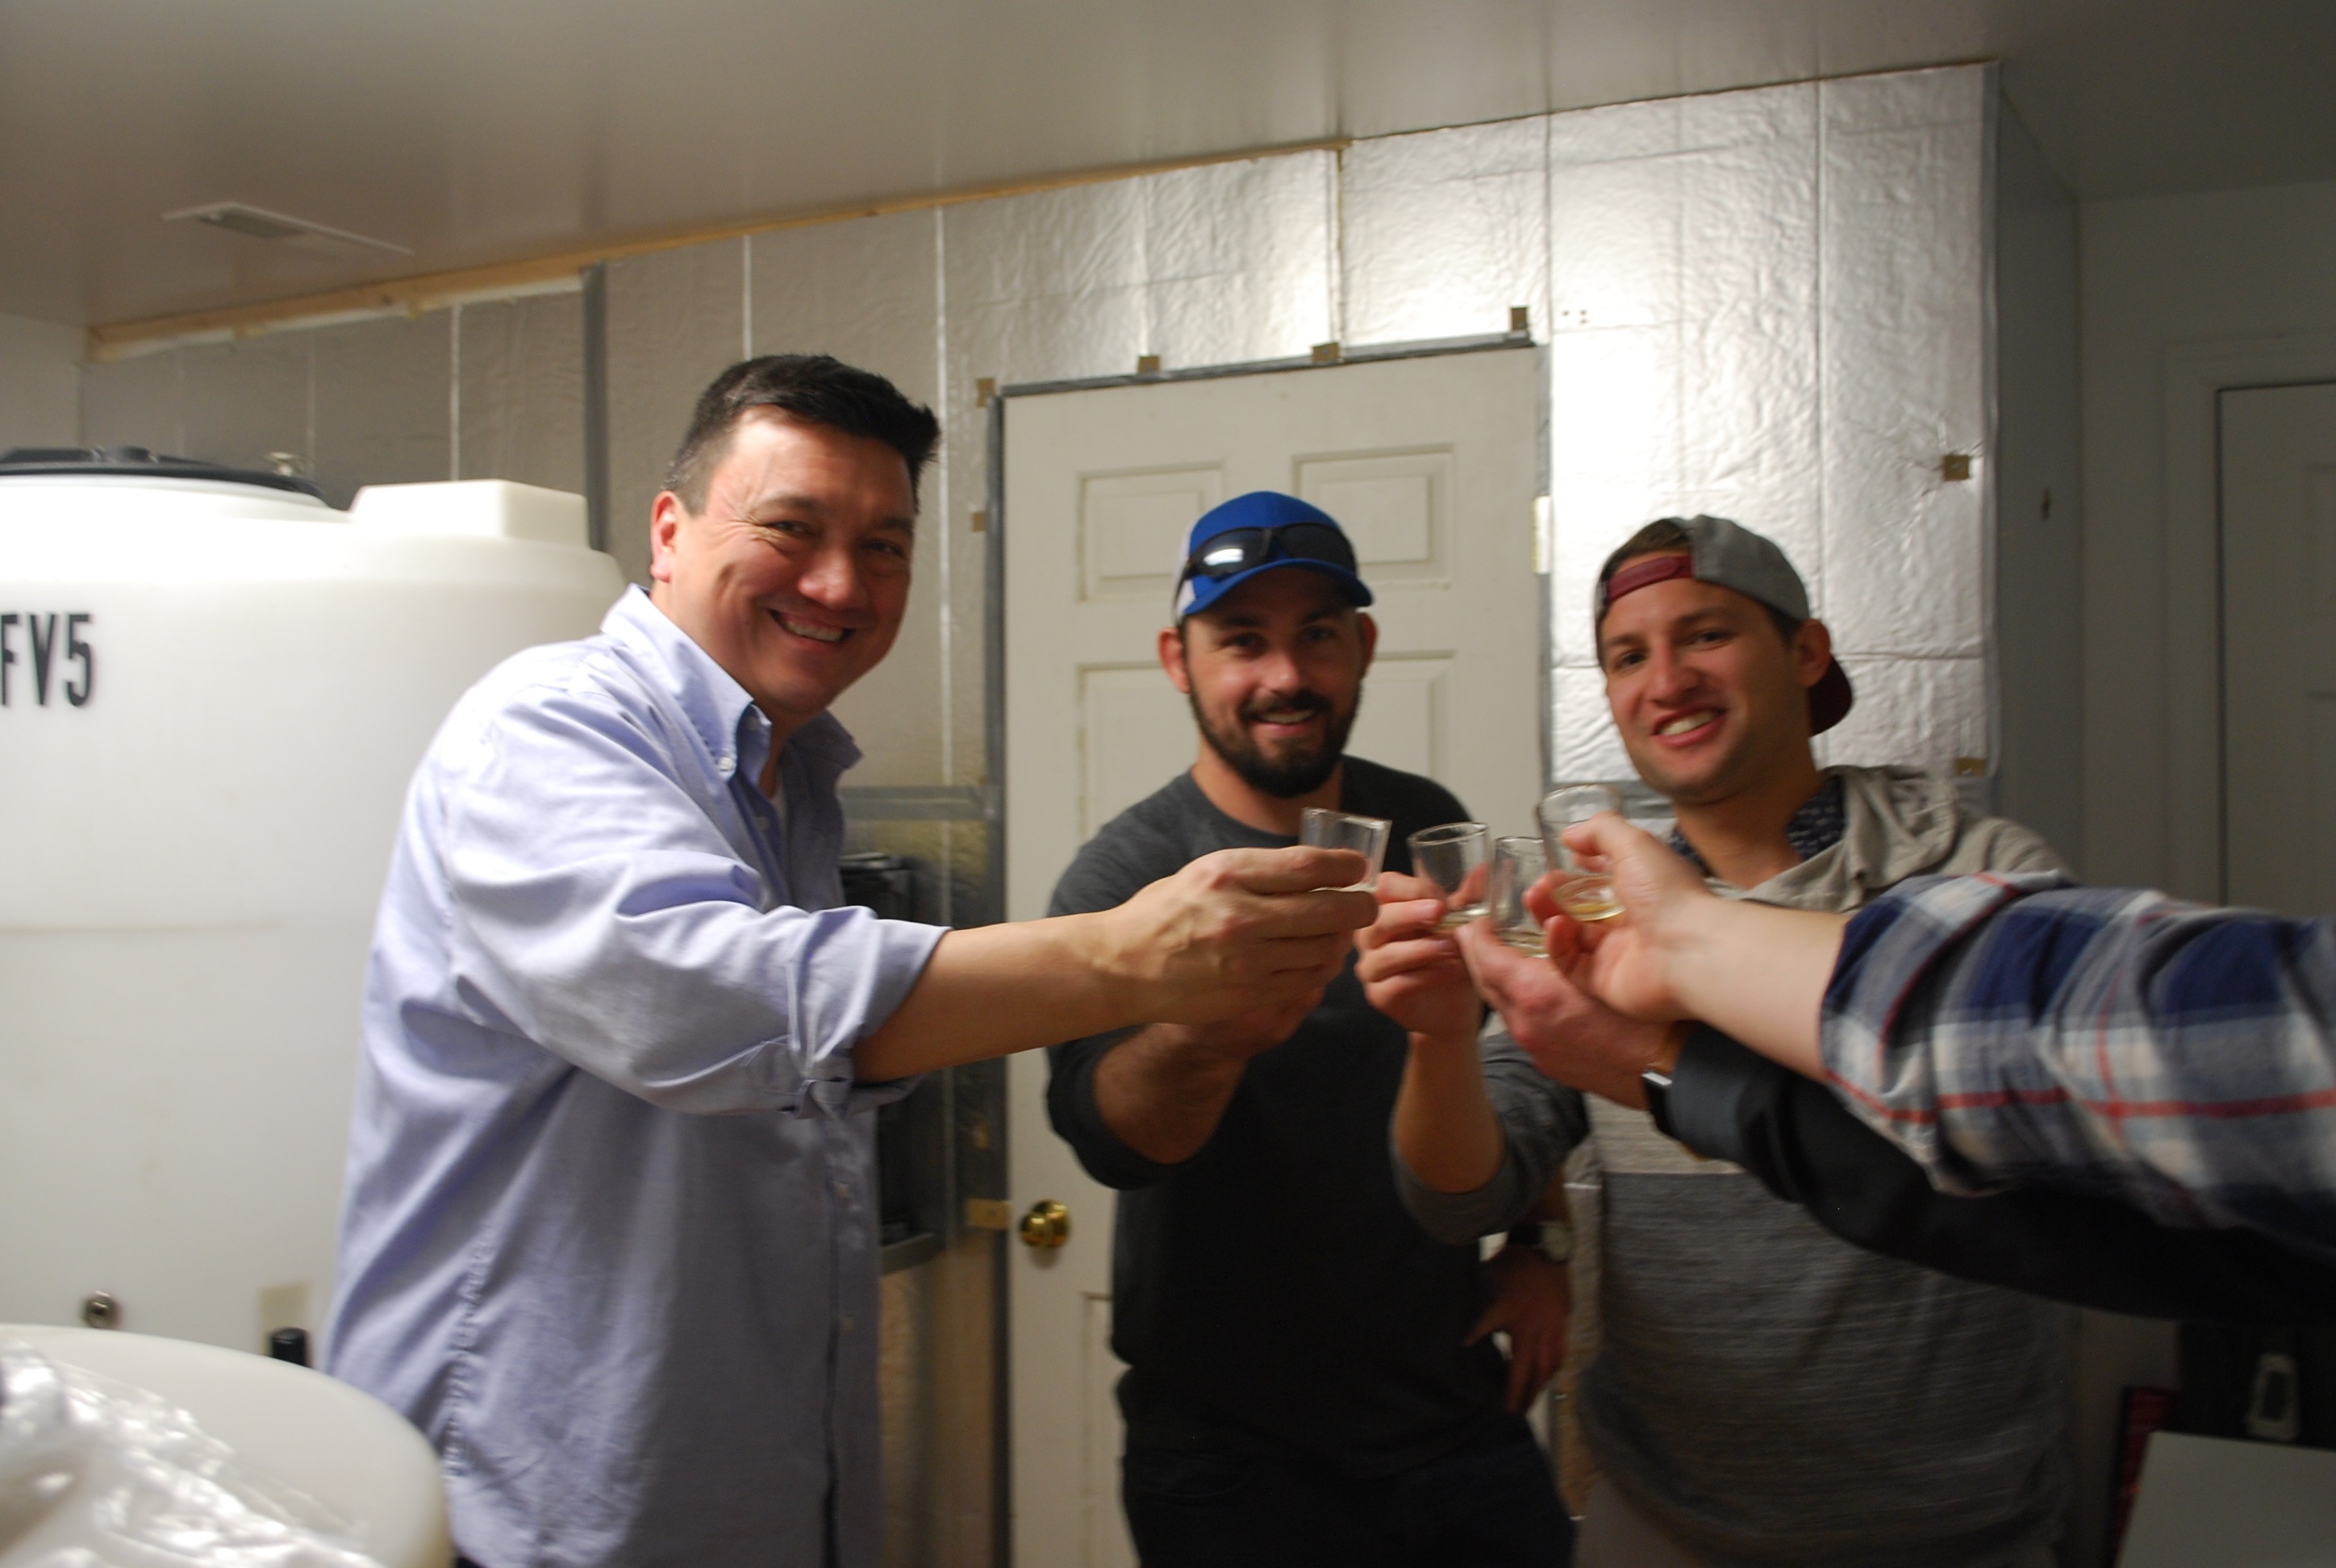 homebrewers learning from John the Brewer